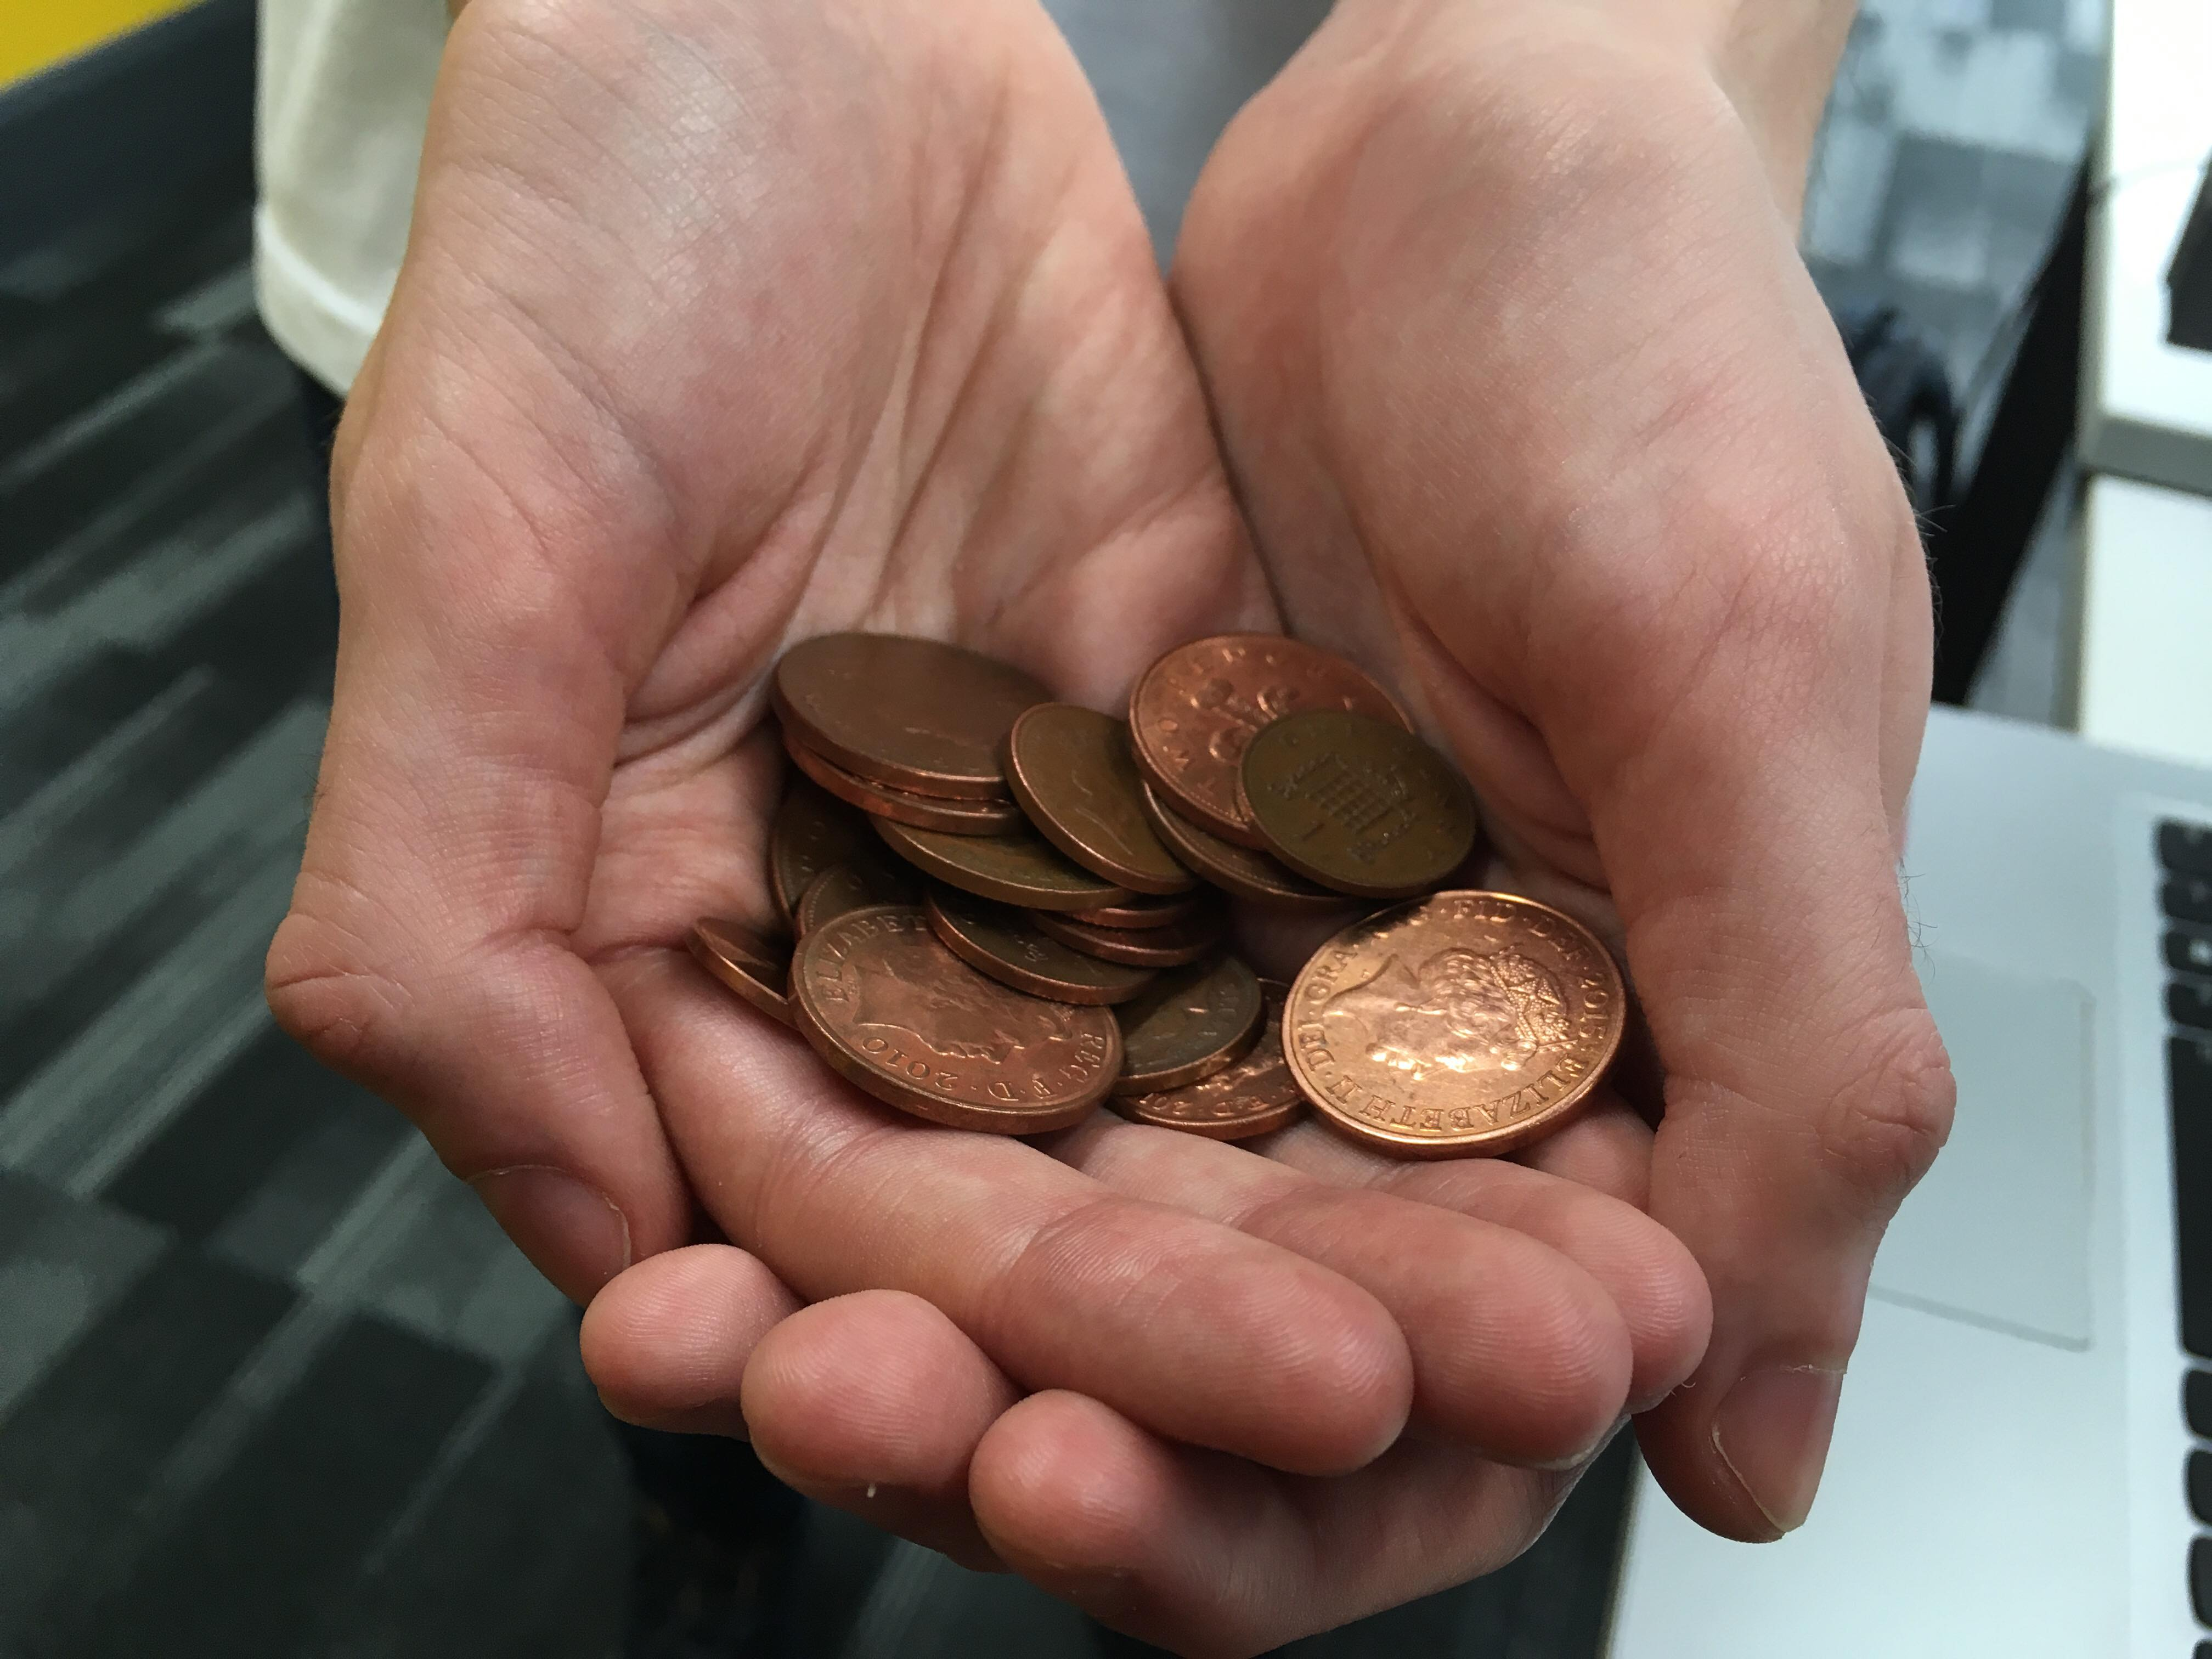 The government could be scrapping the 1 and 2 pence pieces